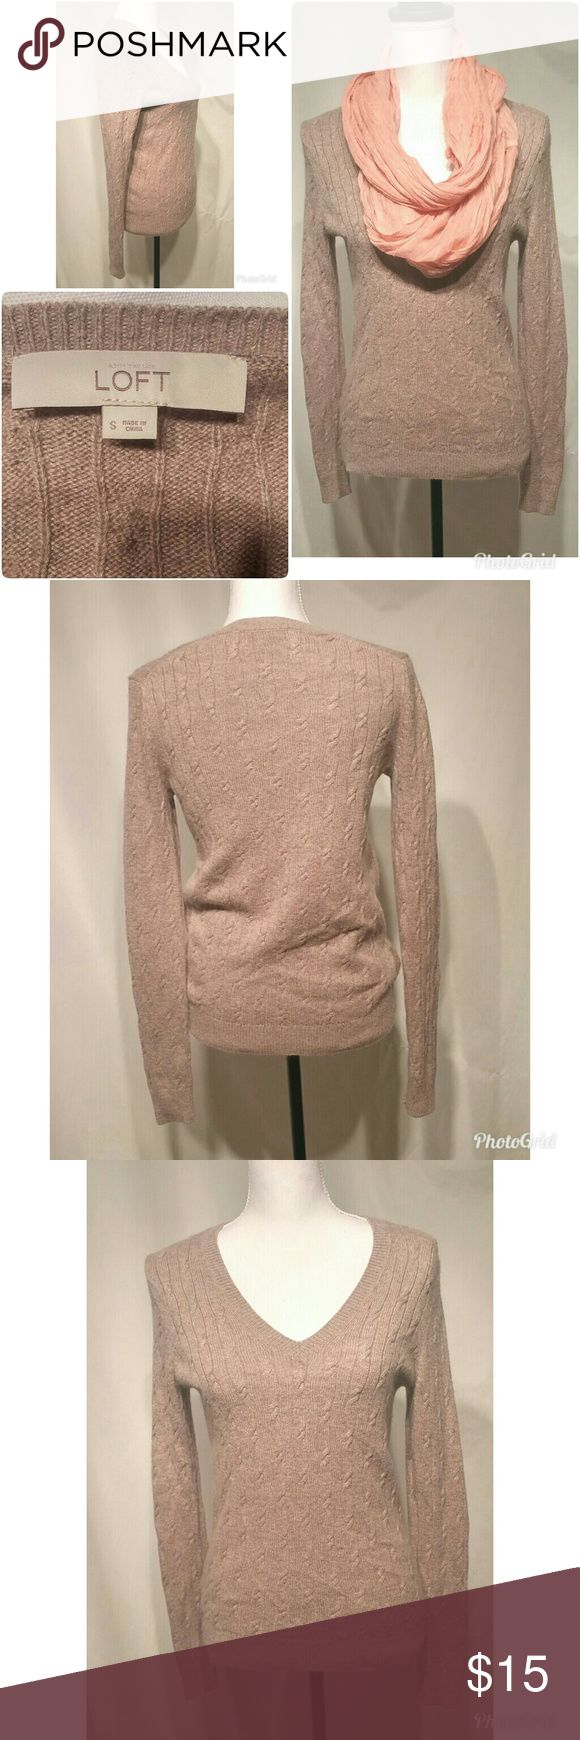 Anne Taylor Loft Beige V -Neck Sweater Beautiful long sleeve Brown/beige v neck women's sweater made by Anne Taylor Loft. EUC, no stains, rips, or holes. Great piece to add to your wardrobe! Ann Taylor Sweaters V-Necks